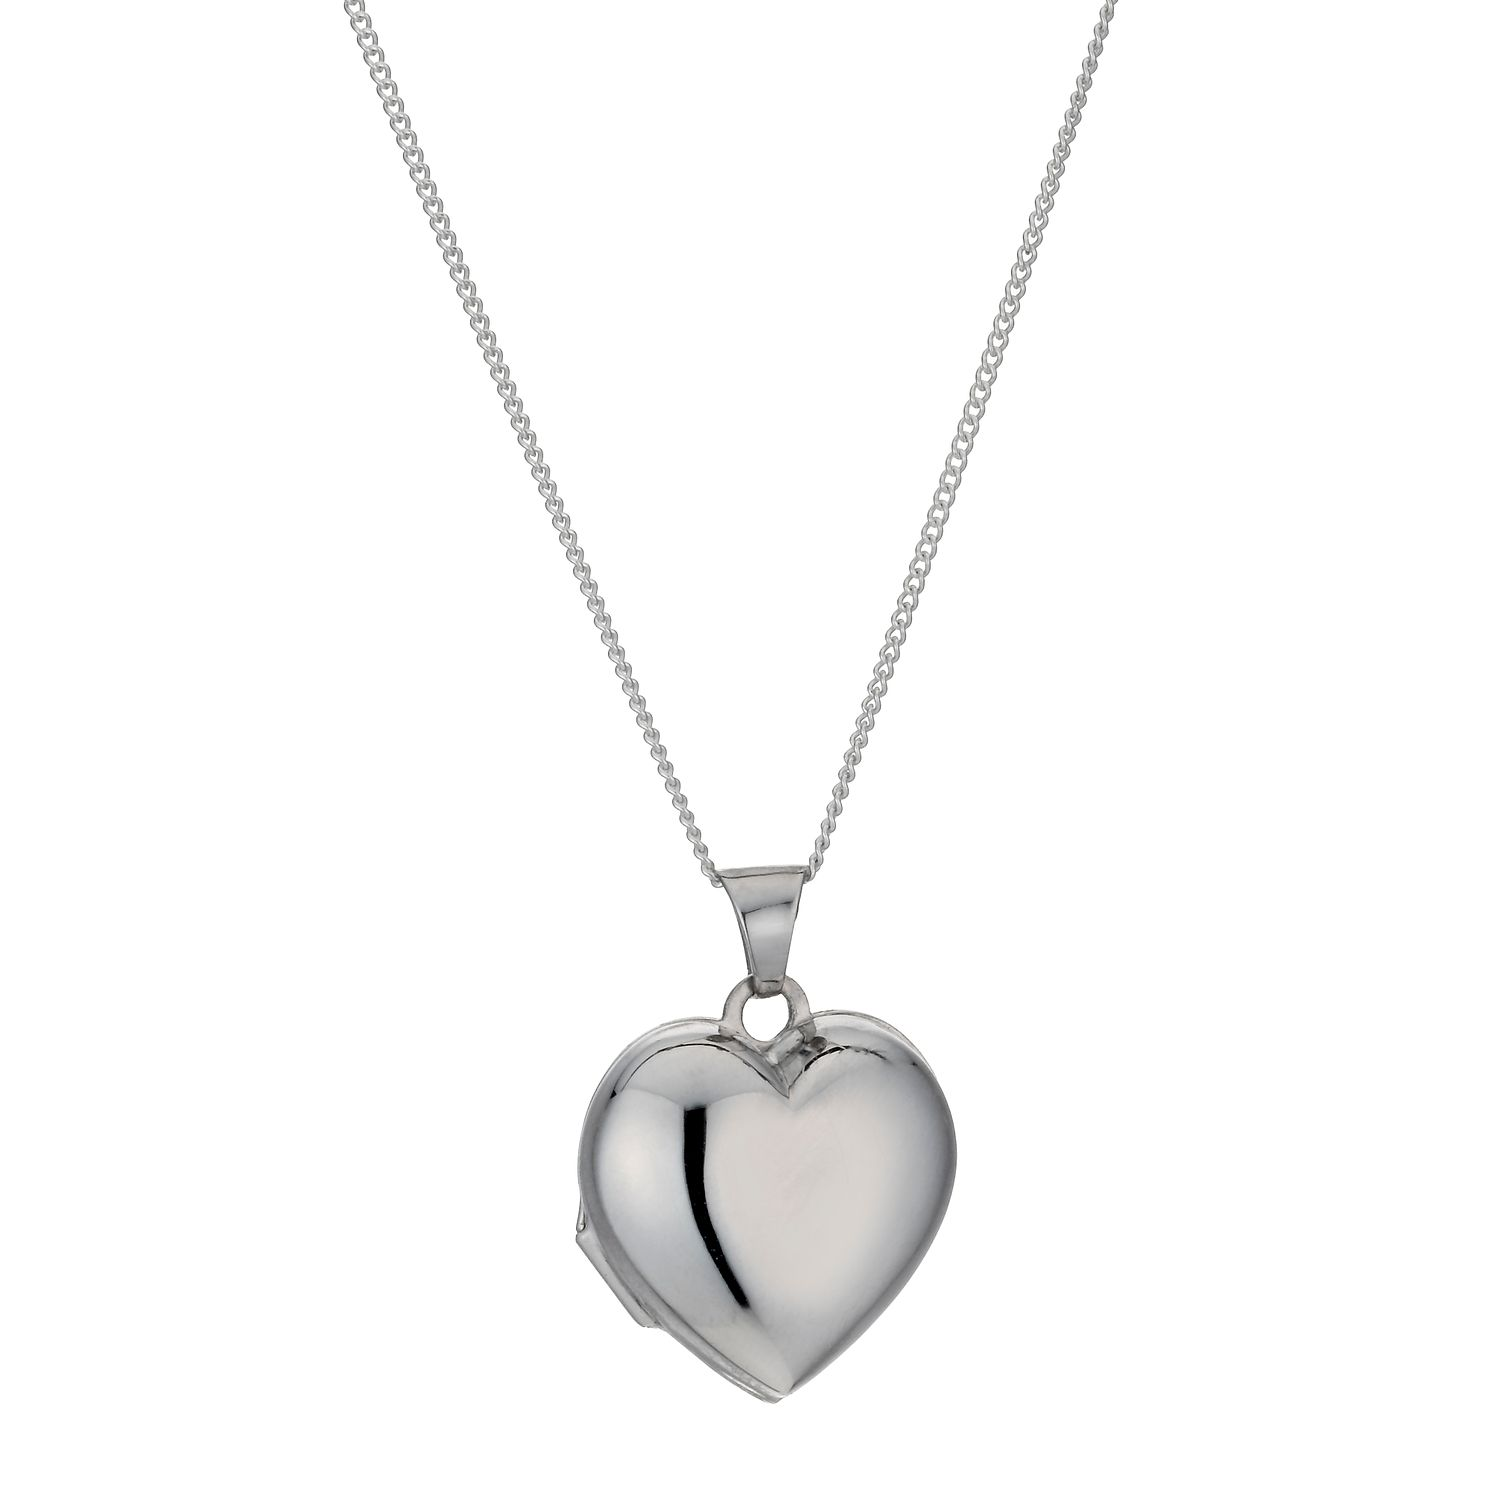 rhodium h zirconia lockets cubic plated webstore number product heart sterling locket samuel d silver